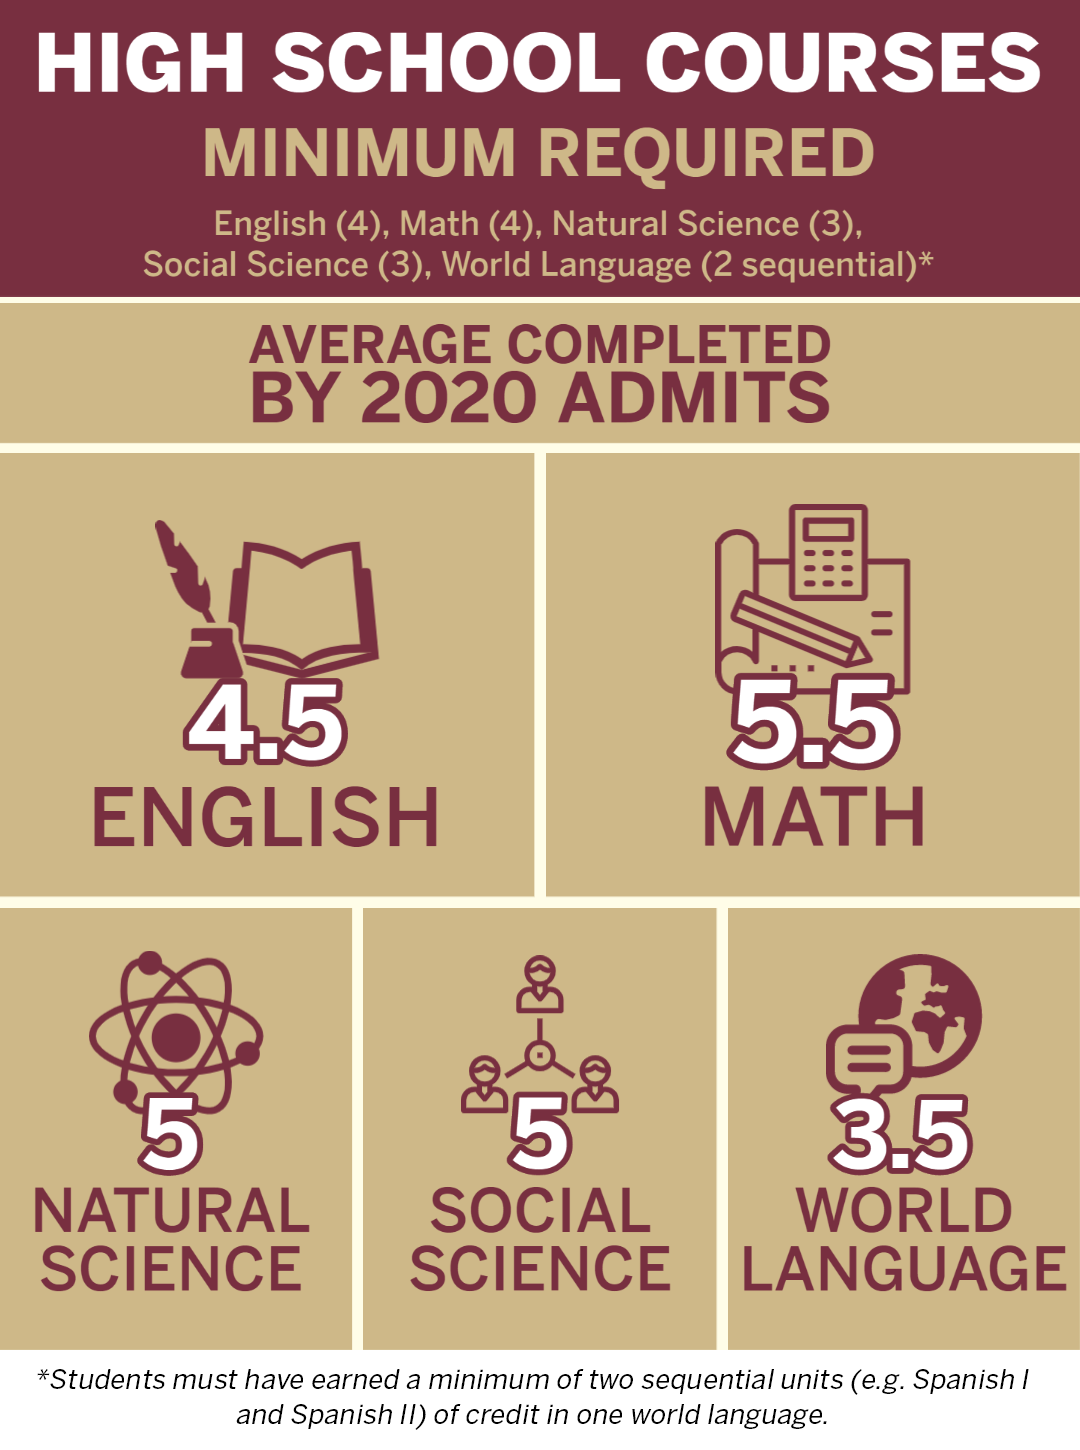 Minumum high school courses required: 4 English, 4 Math, 3 Natural Science, 3 Social Science, 2 sequential World Language. Average high school courses completed: 4.5 English, 5.5 Math, 5 Natural Science, 5 Social Science, 3.5 World Language.